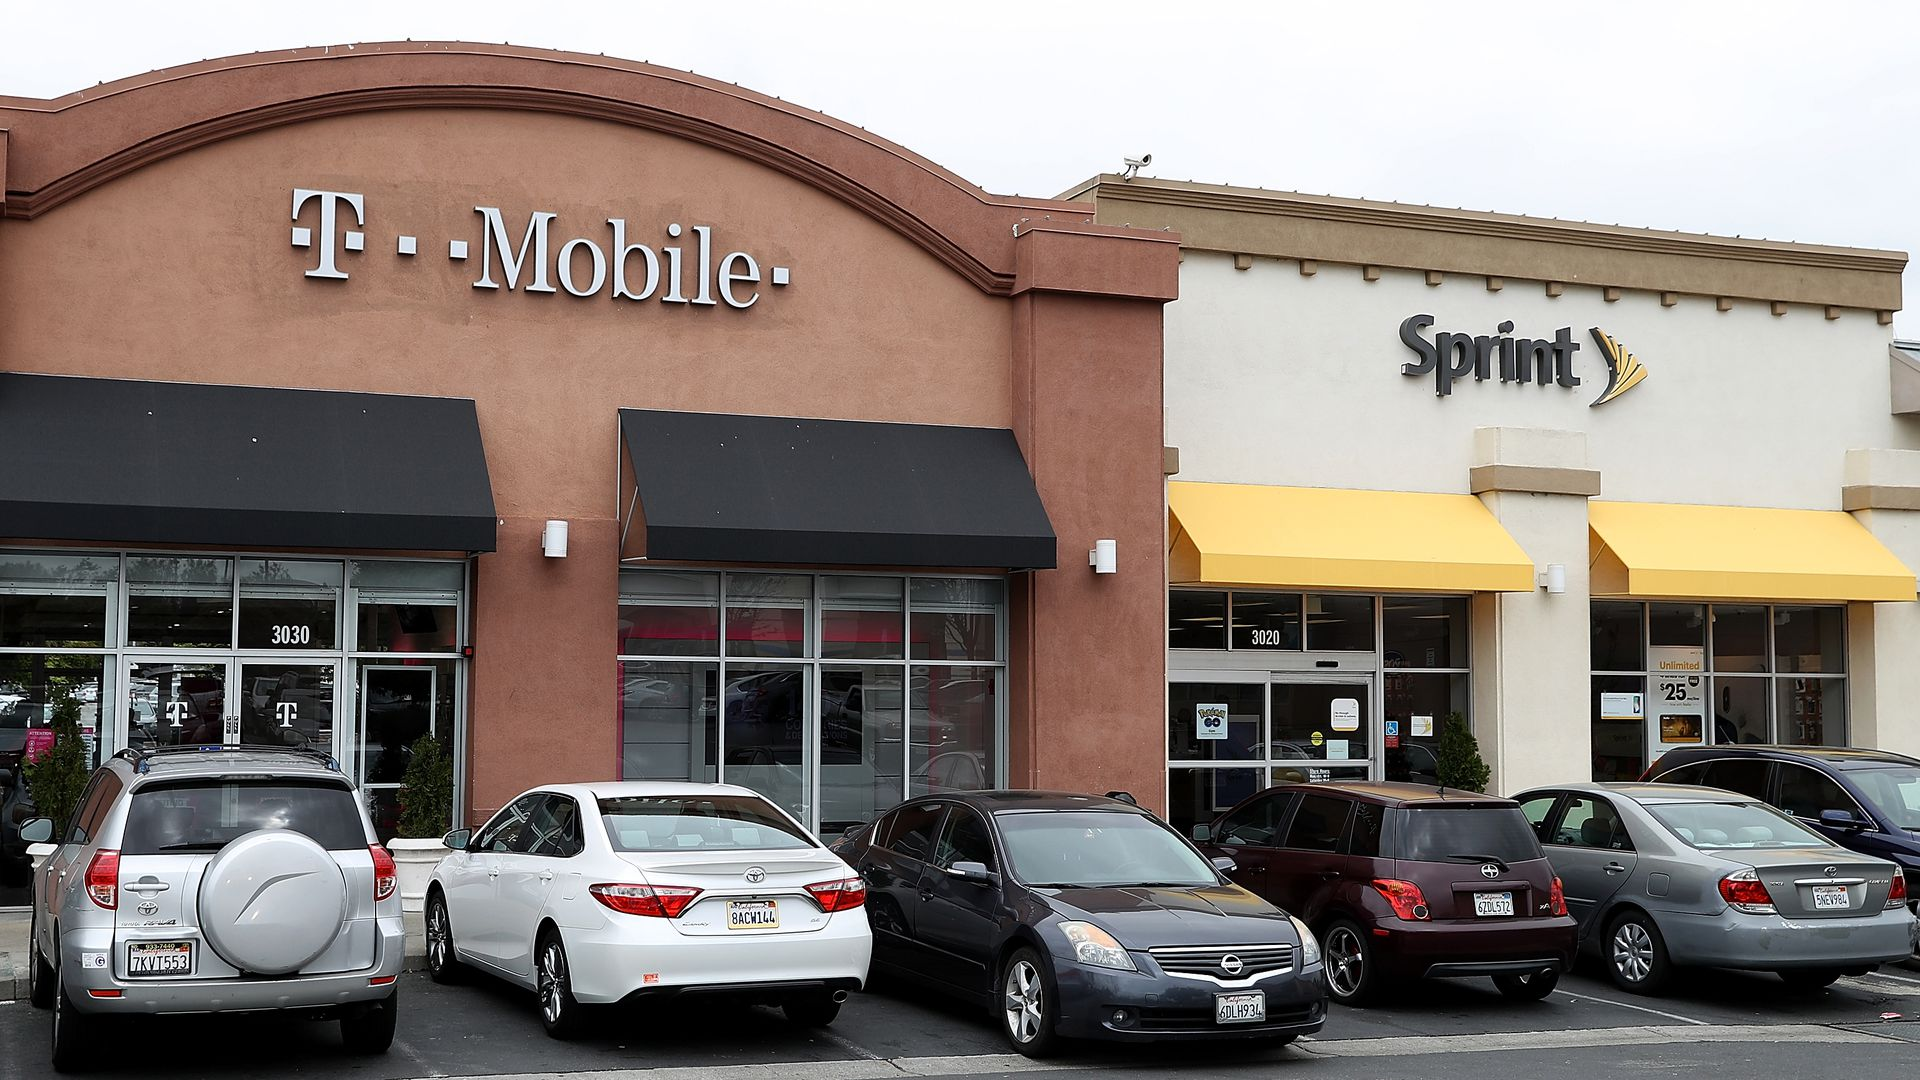 A T-Mobile and Sprint store next to each other